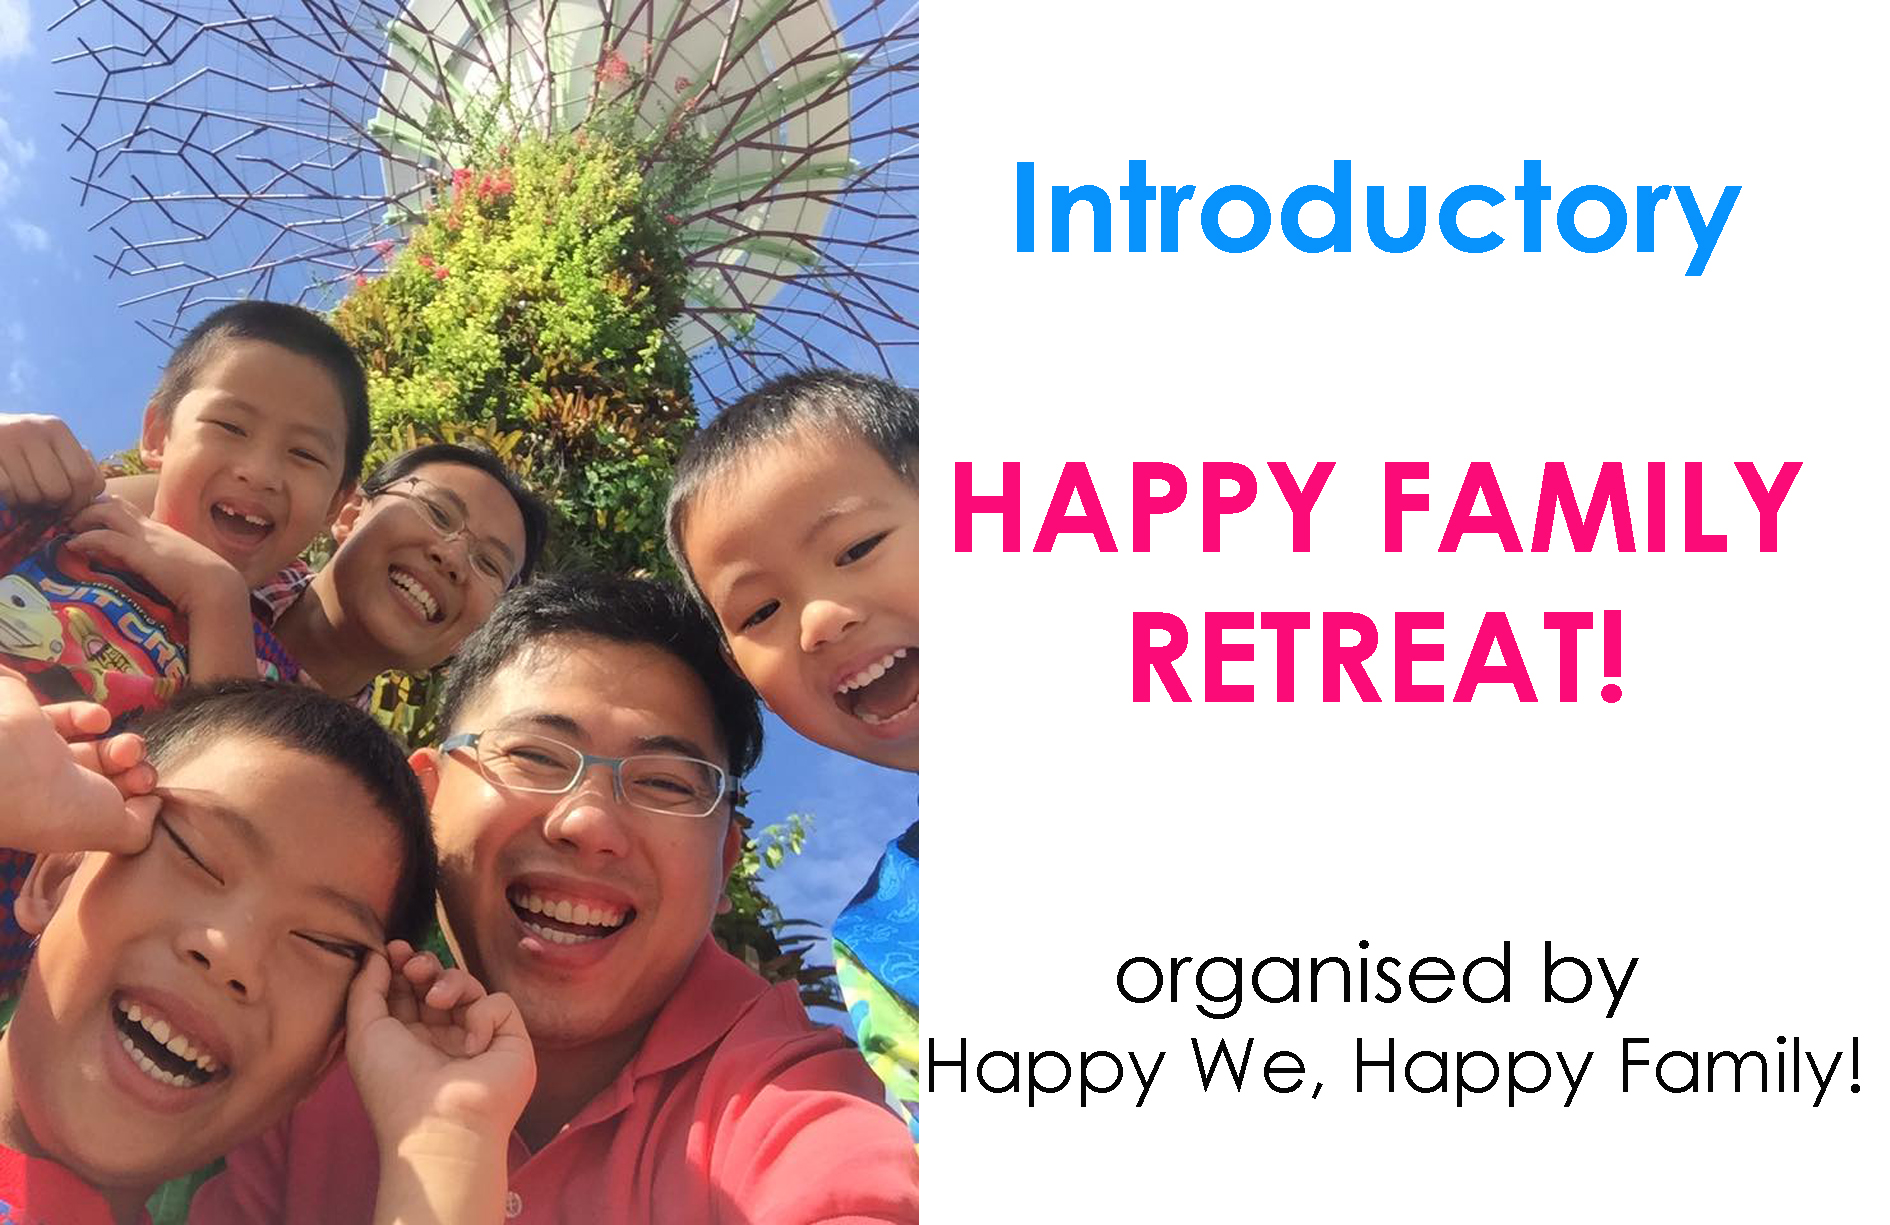 Happy Family Retreat